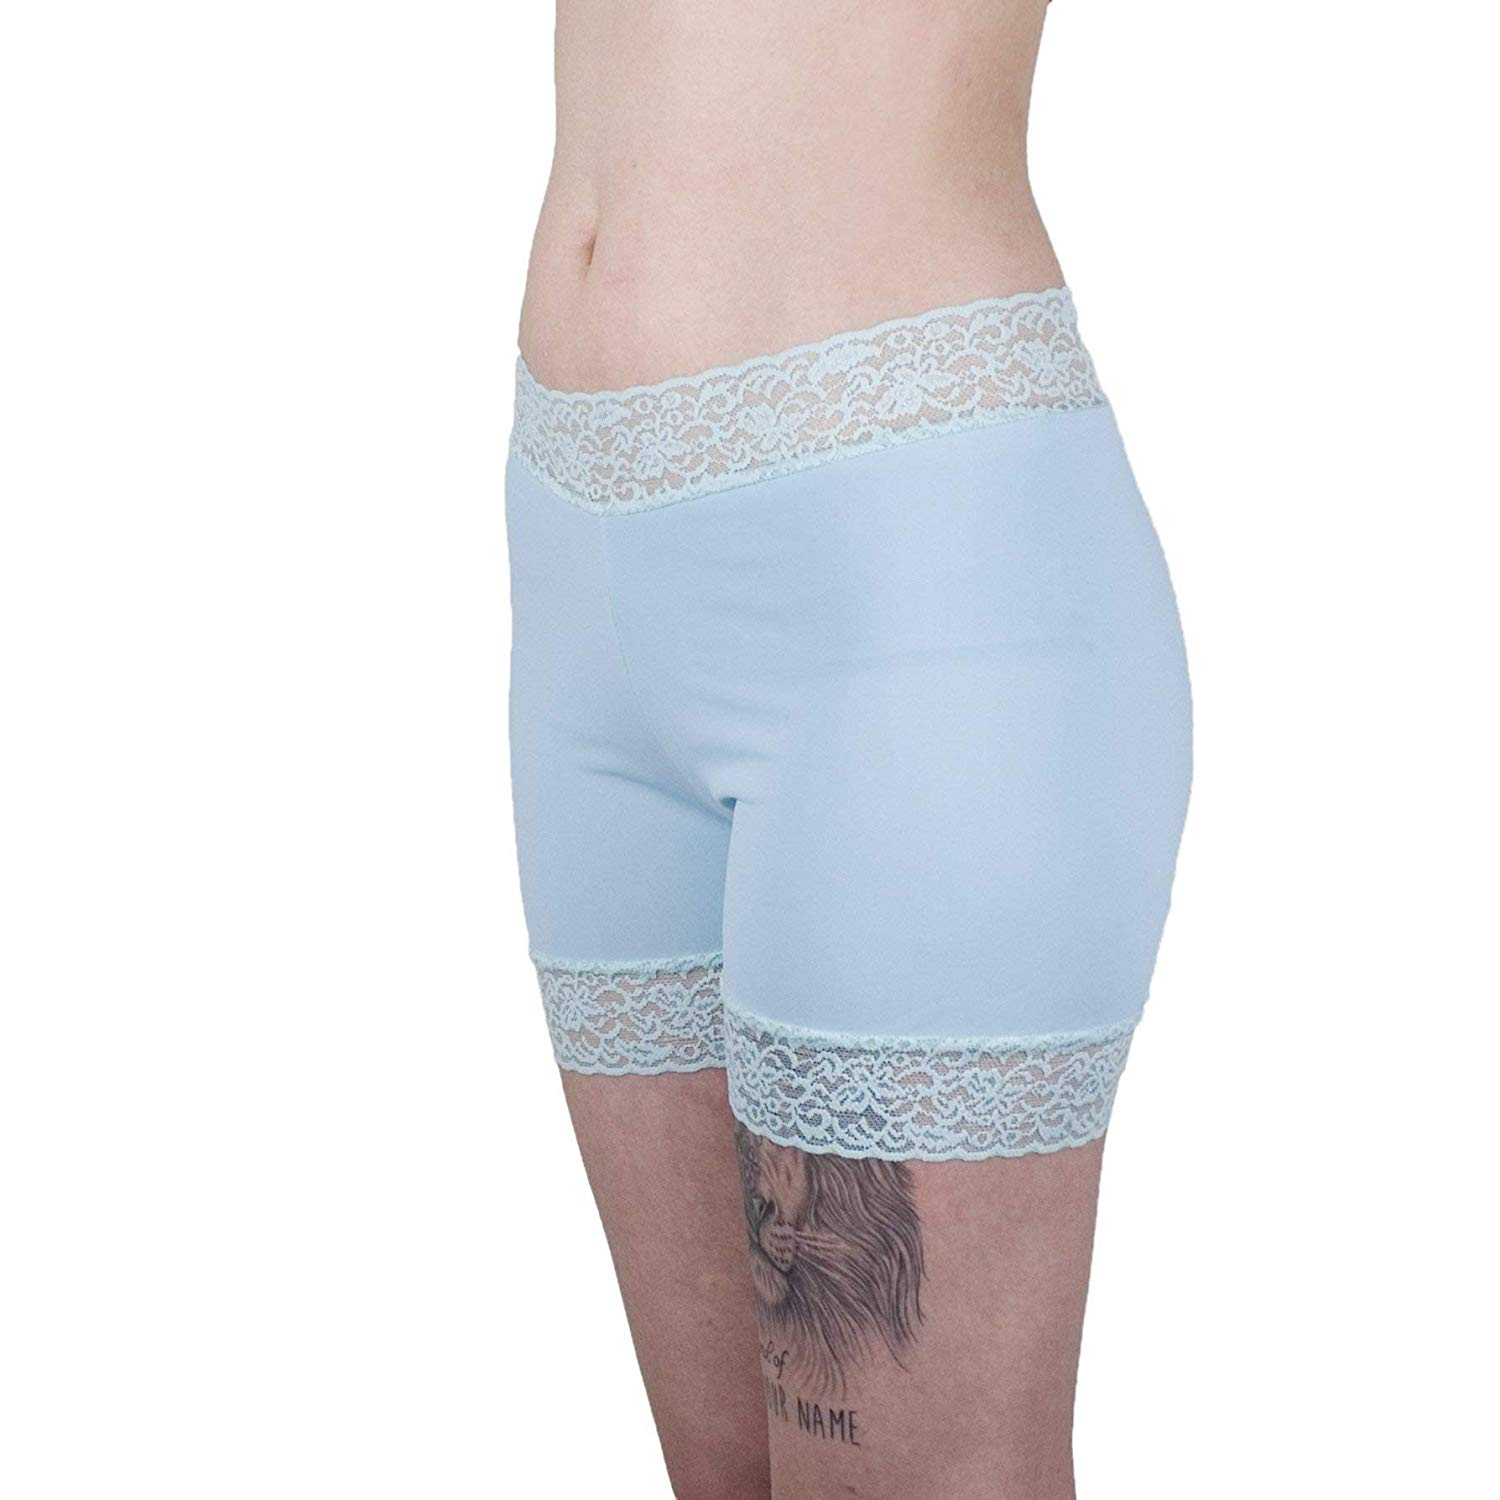 c516d9e12cc Get Quotations · Mint Underpants Lace Trimmed Biker Shorts Women s Boxer  Briefs